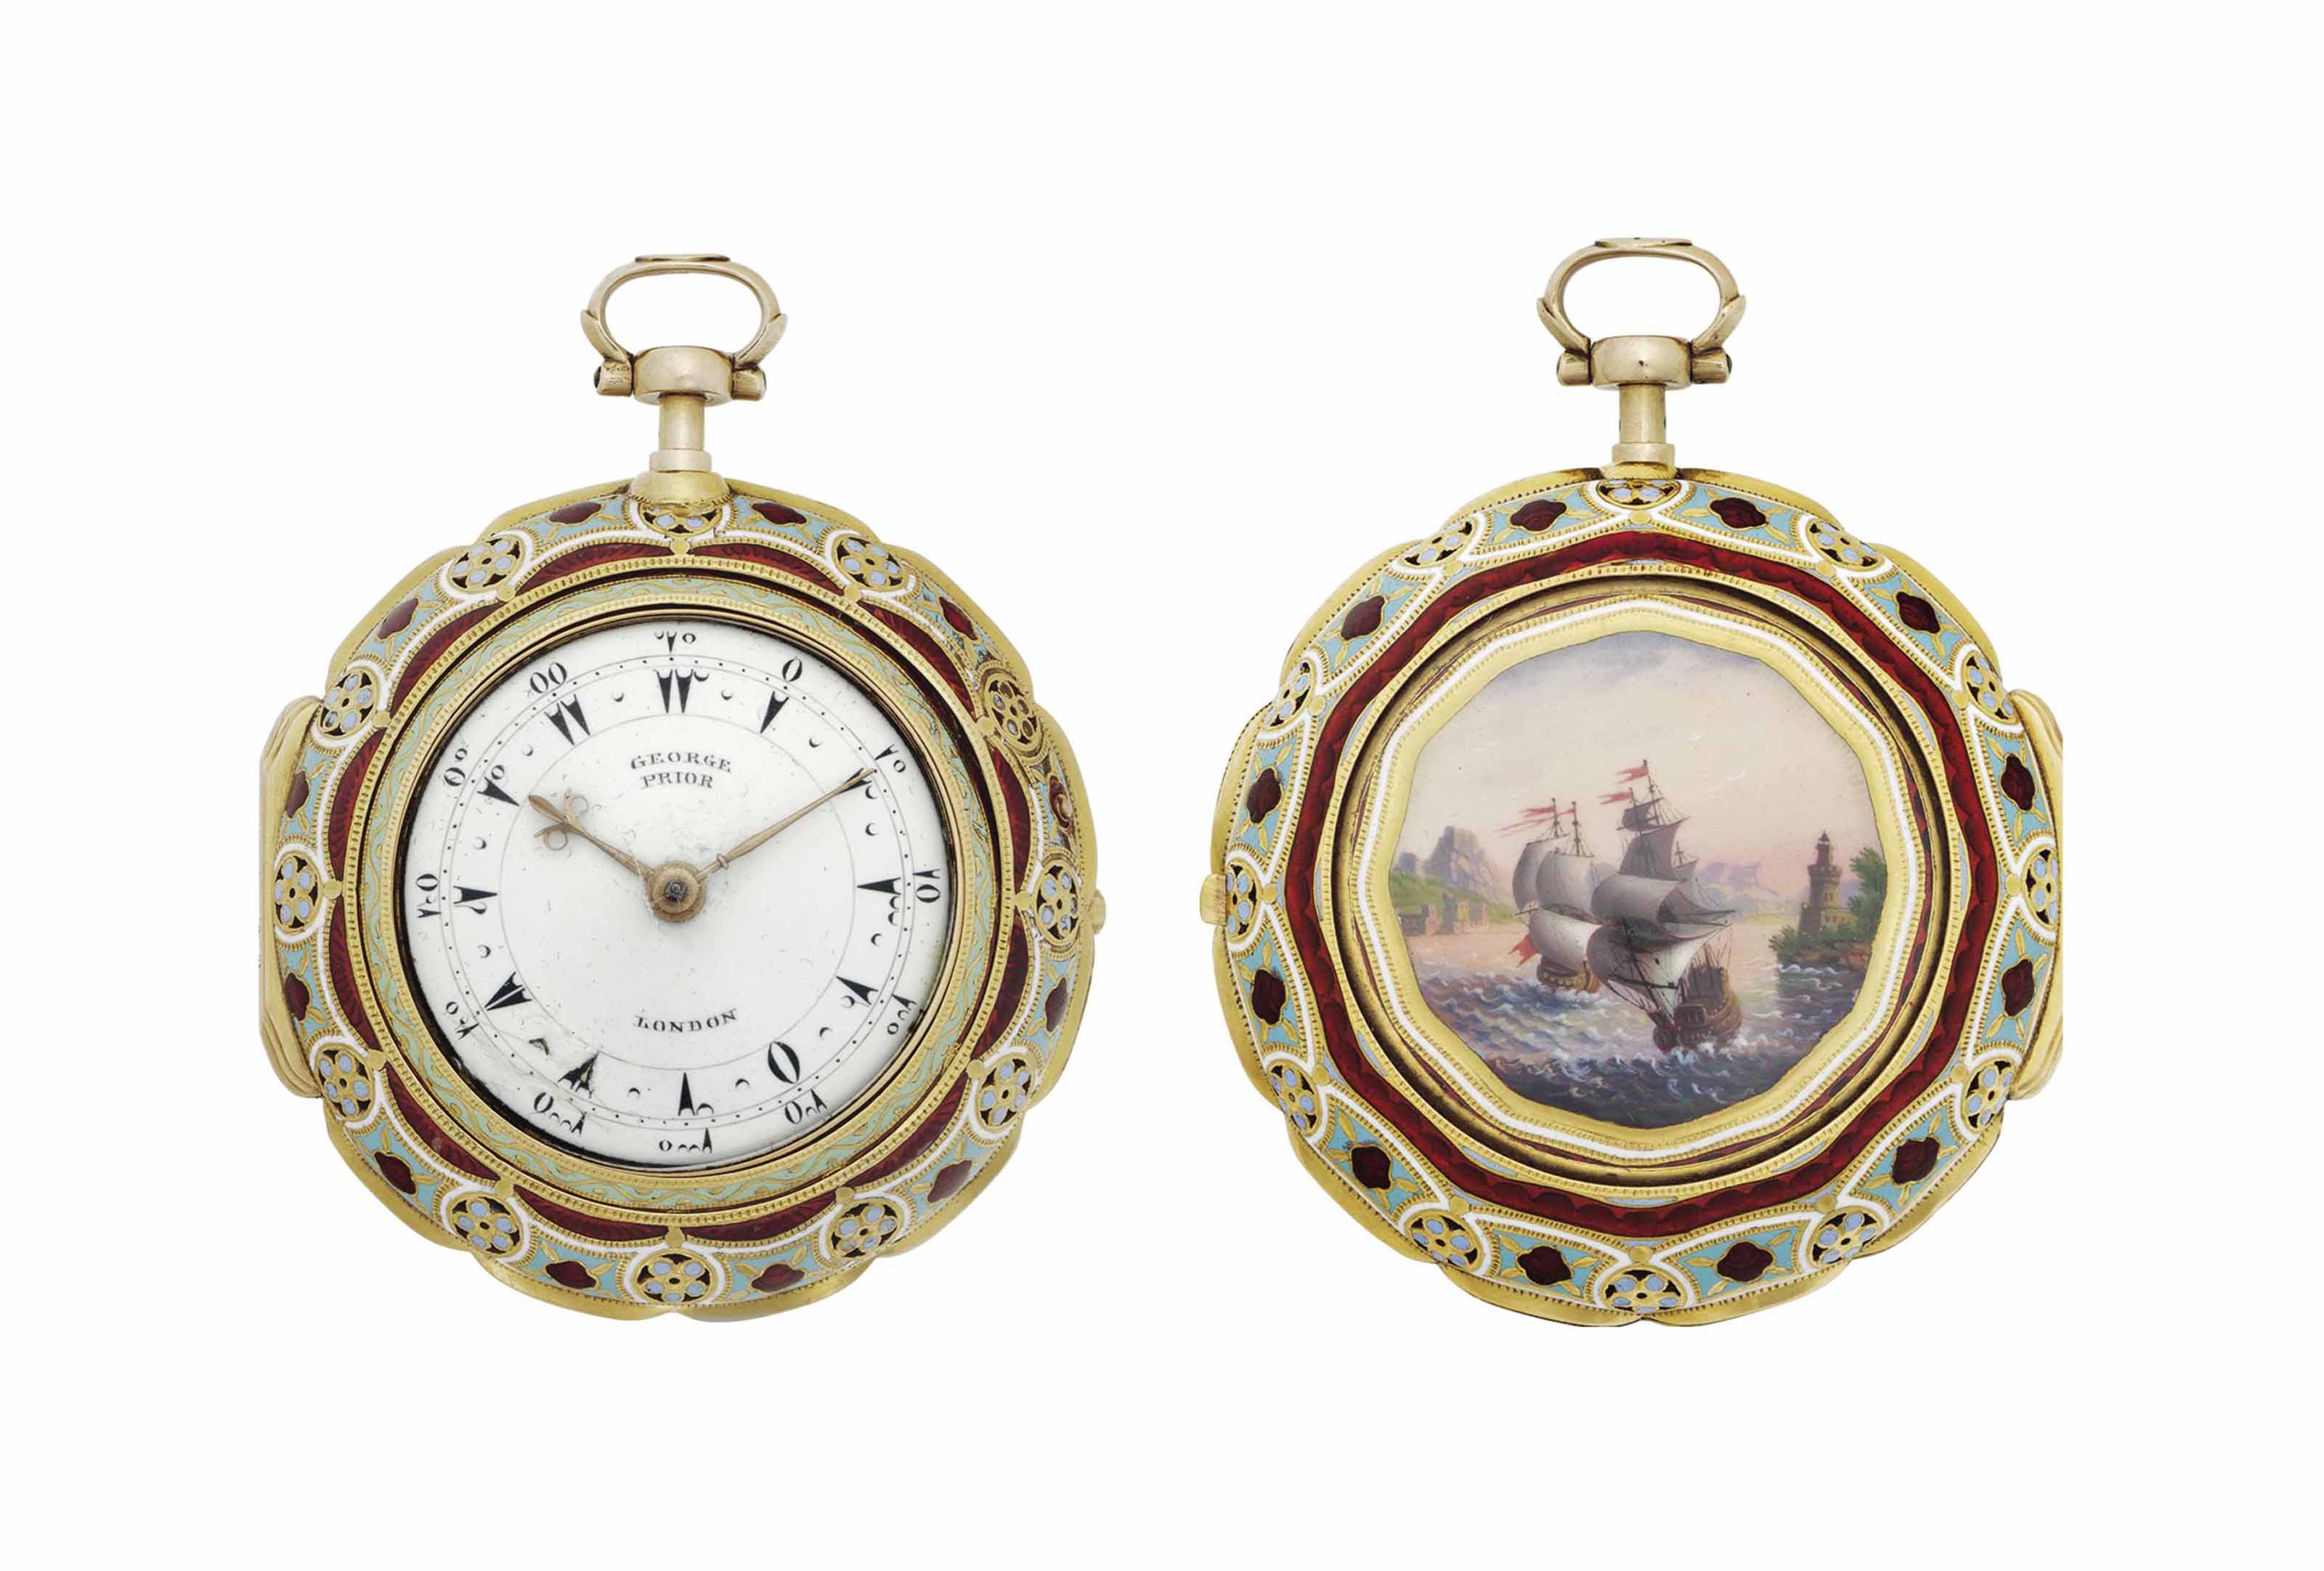 Markwick Markham Perigal. A Fine and Rare 18k Gold and Enamel Triple Case Quarter Repeating Verge Watch Made For The Turkish Market With A Later Dial